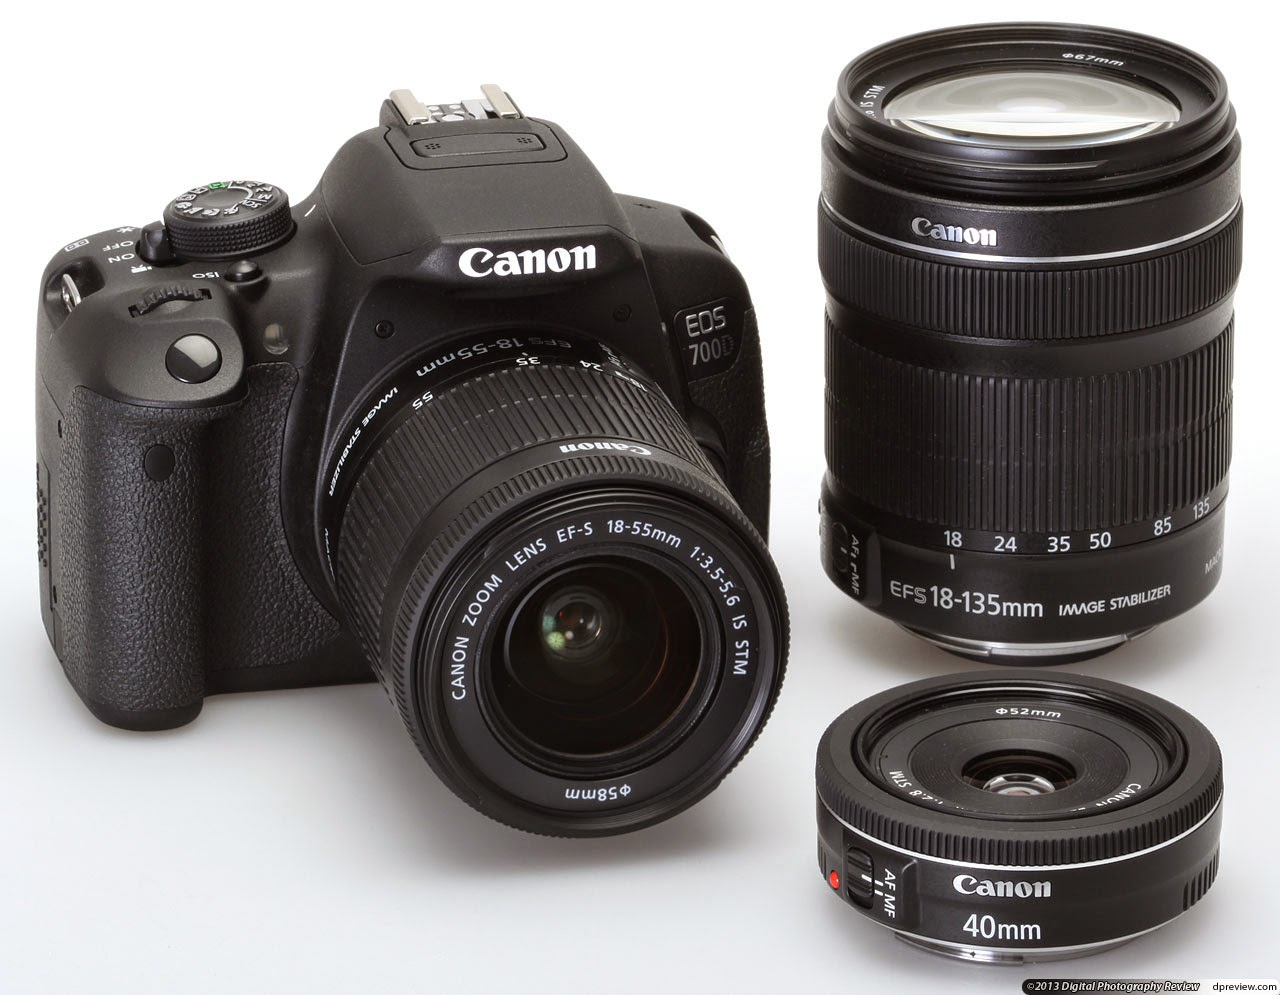 Canon EOS 700D review, Canon Rebel T5i review, Nikon D5300 review, Canon EOS 700D vs Nikon Nikon D5300, Full-HD video, new photographer